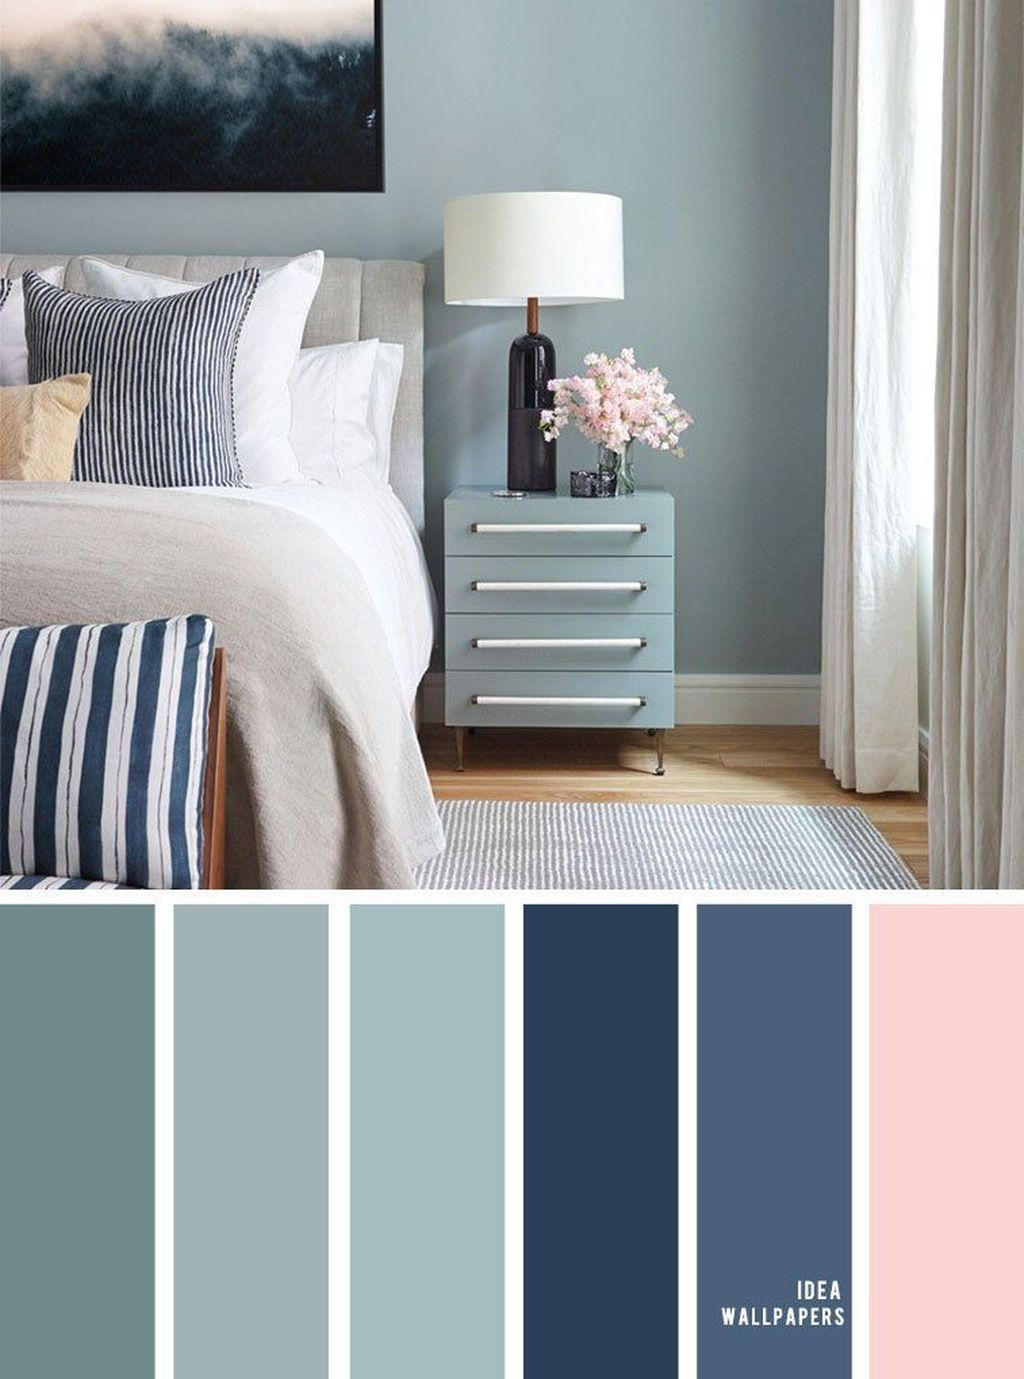 33 Latest Bedroom Color Schemes Design Ideas With Colour Palettes Revealed Master Bedroom Color Schemes Beautiful Bedroom Colors Master Bedroom Colors Latest bedroom color ideas